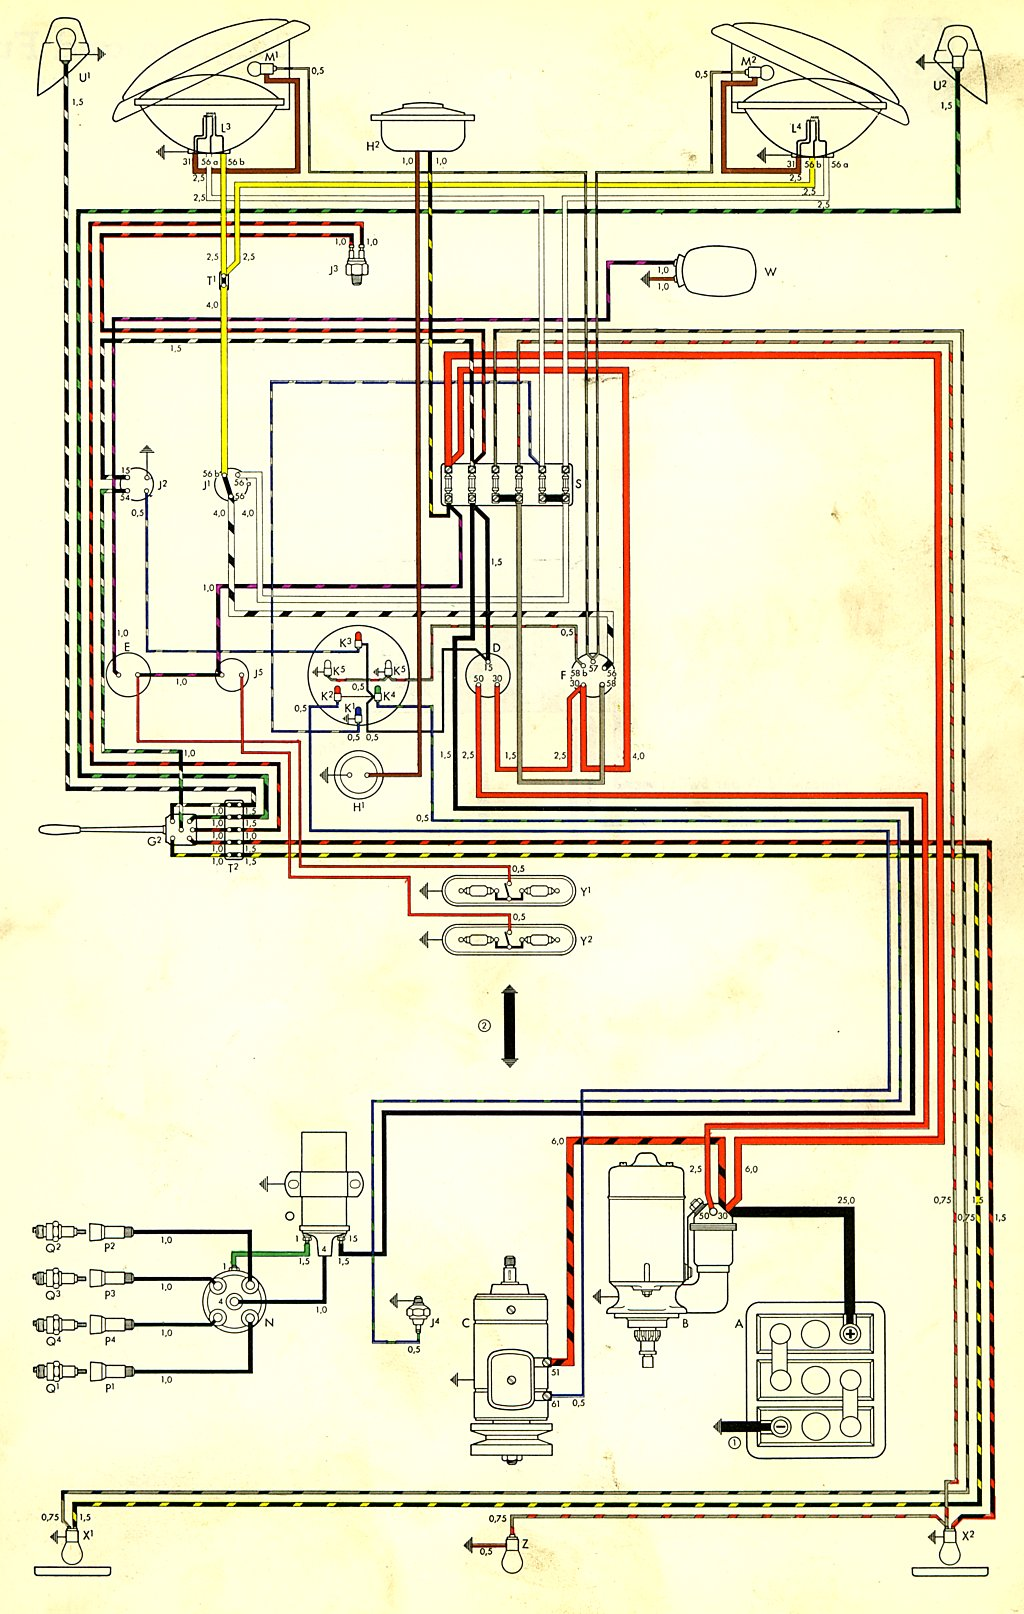 1968 69 Bus Wiring Diagram Library Lincoln Continental